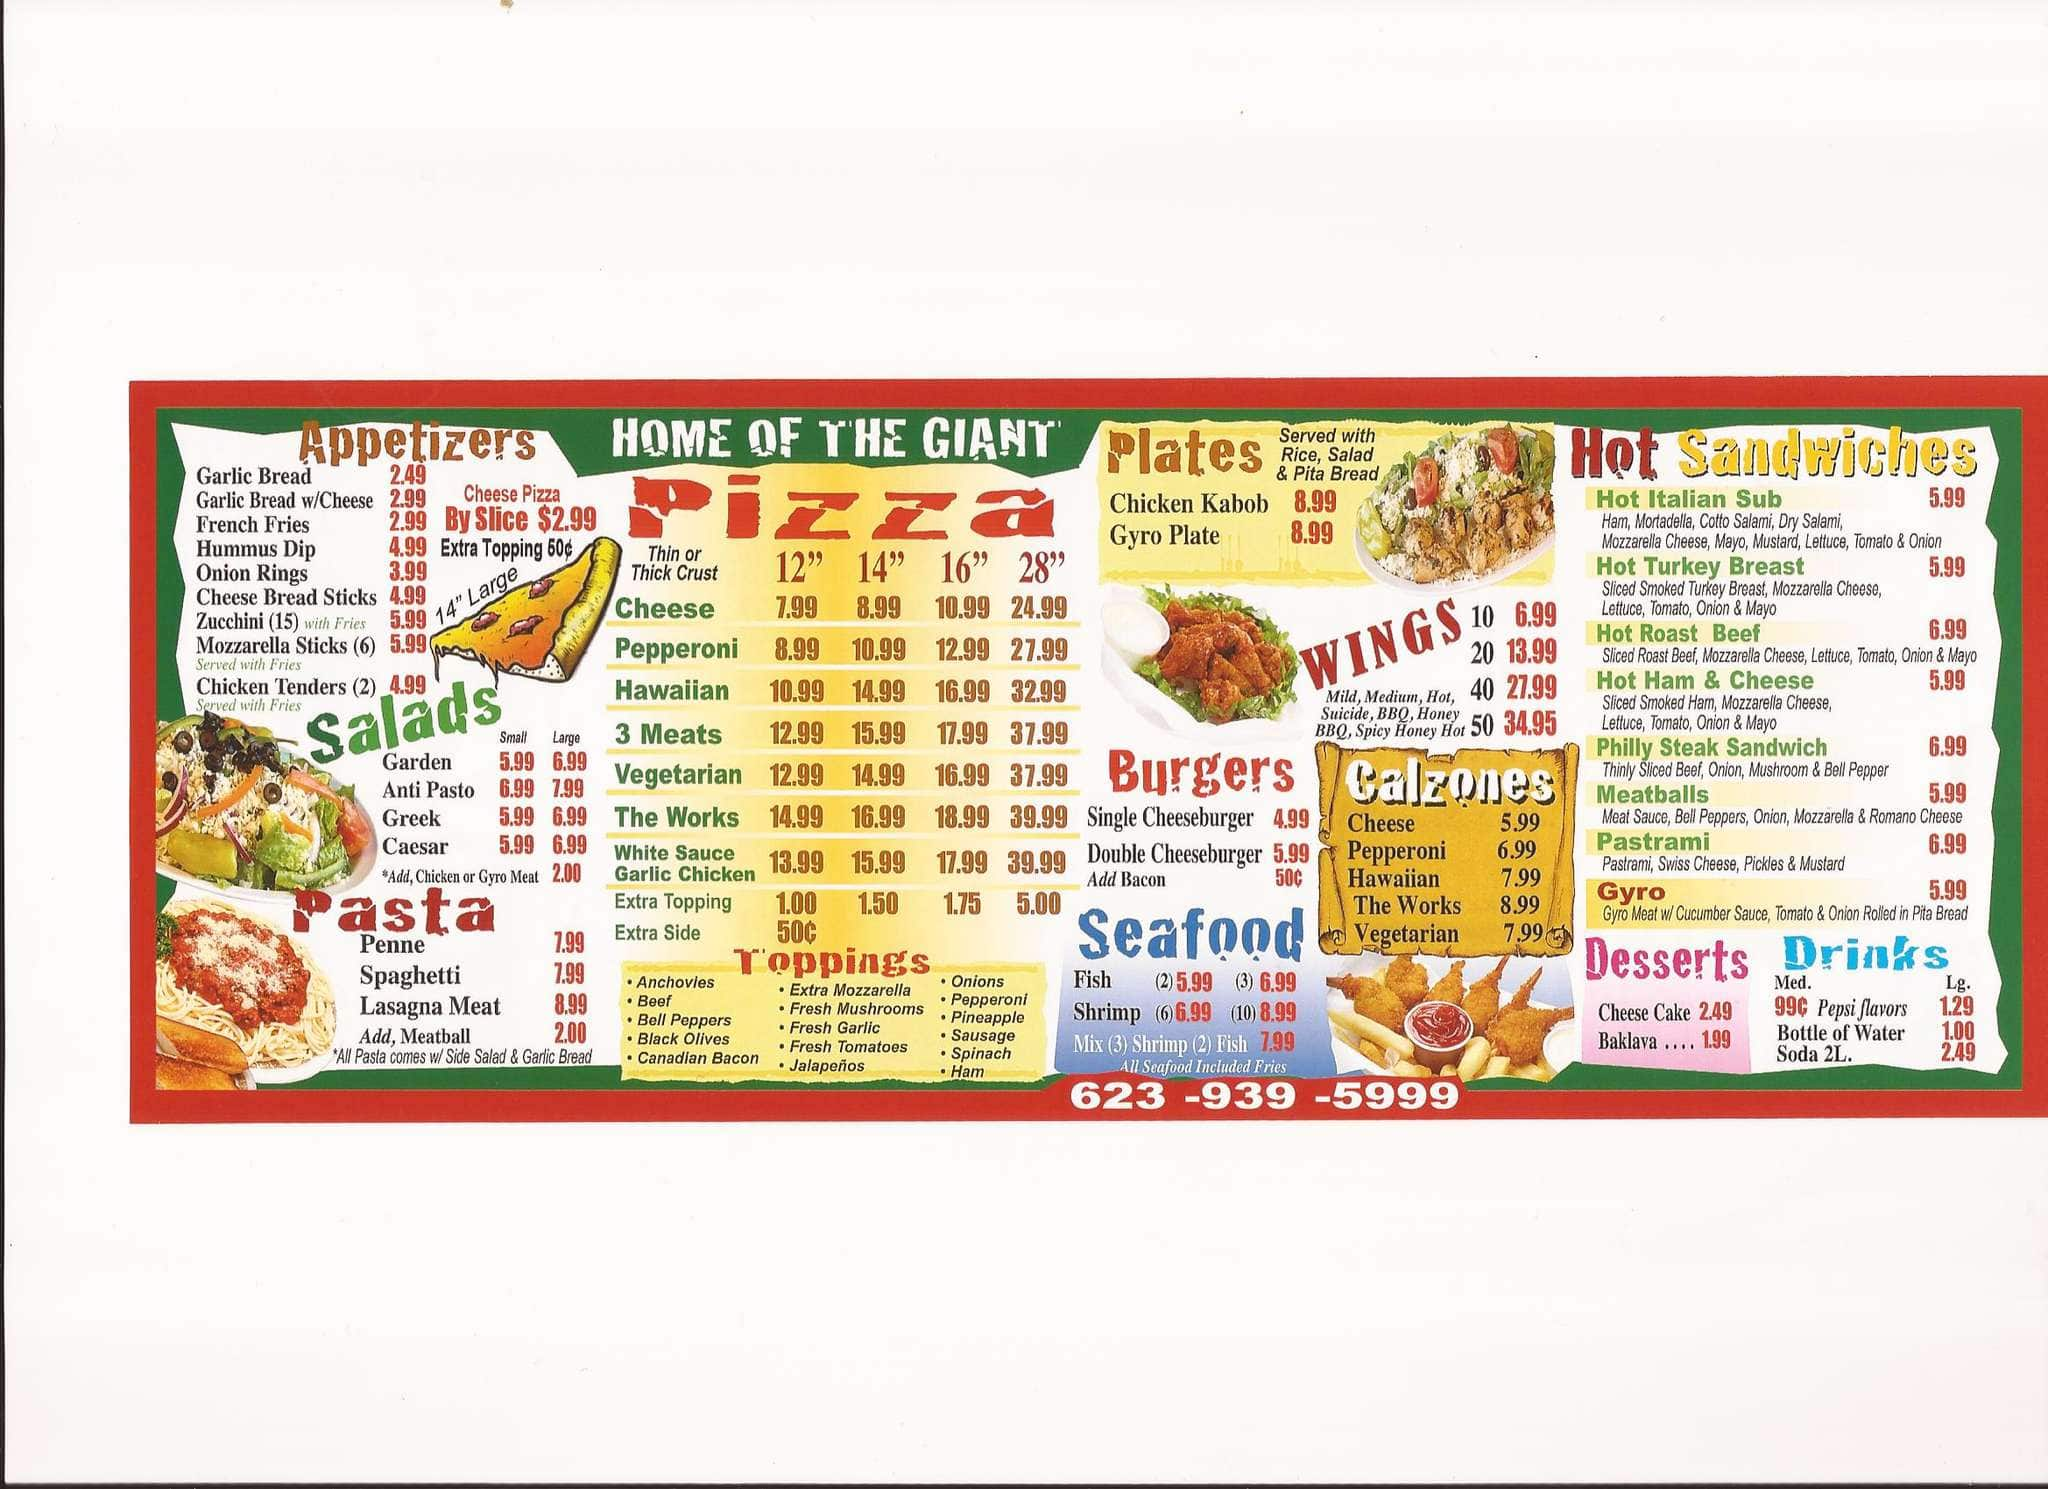 Giant Manhattan Pizza Menu Menu For Giant Manhattan Pizza Glendale